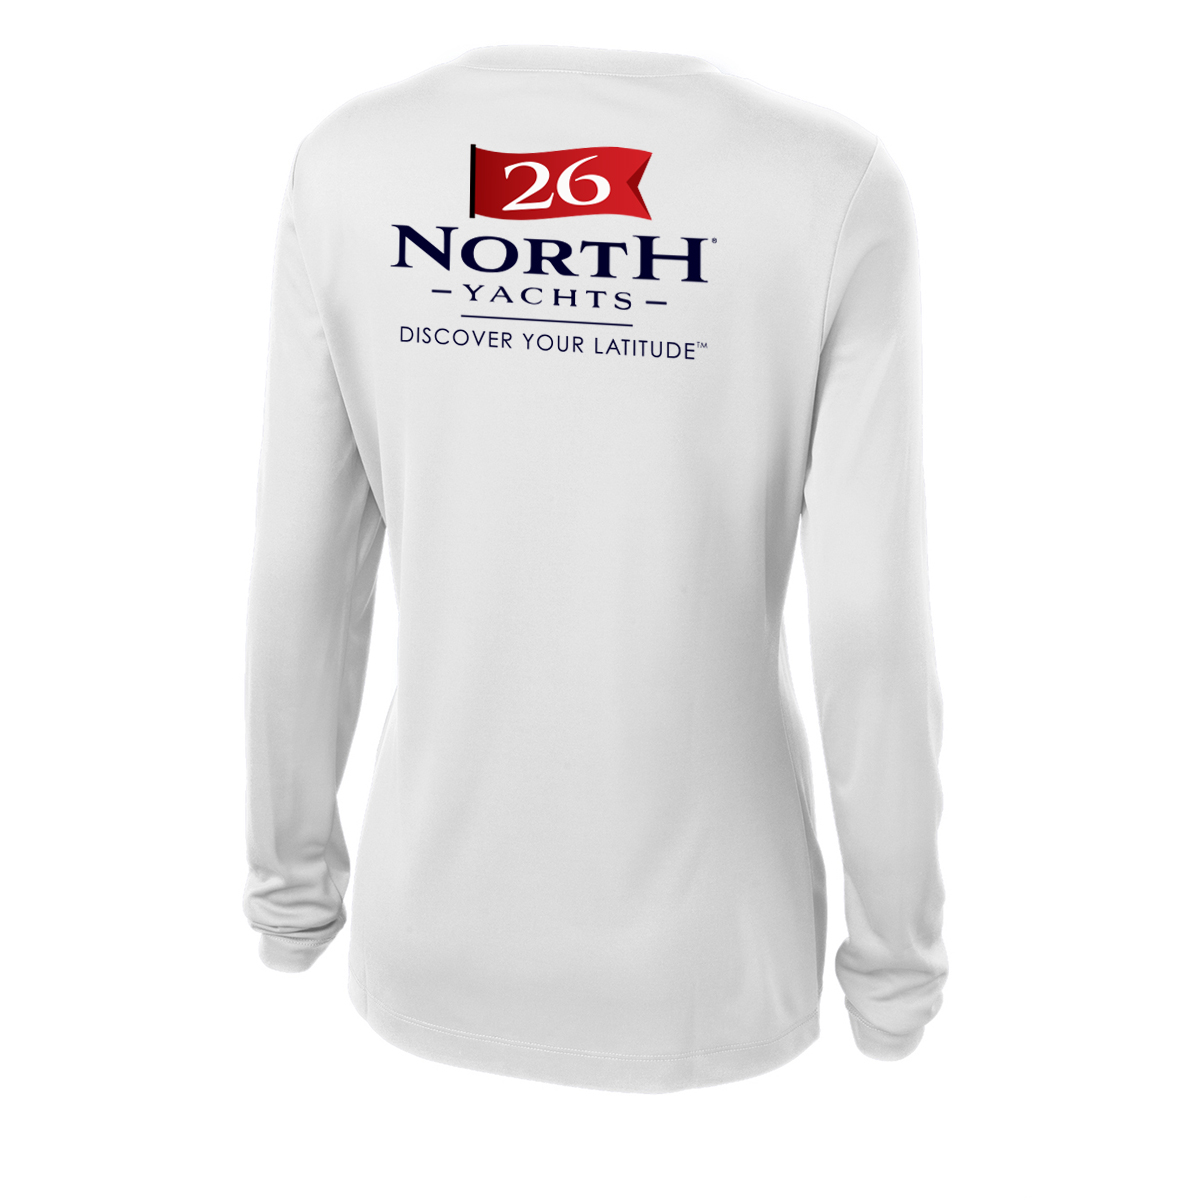 26 North Yachts - Women's Long Sleeve Tech Tee